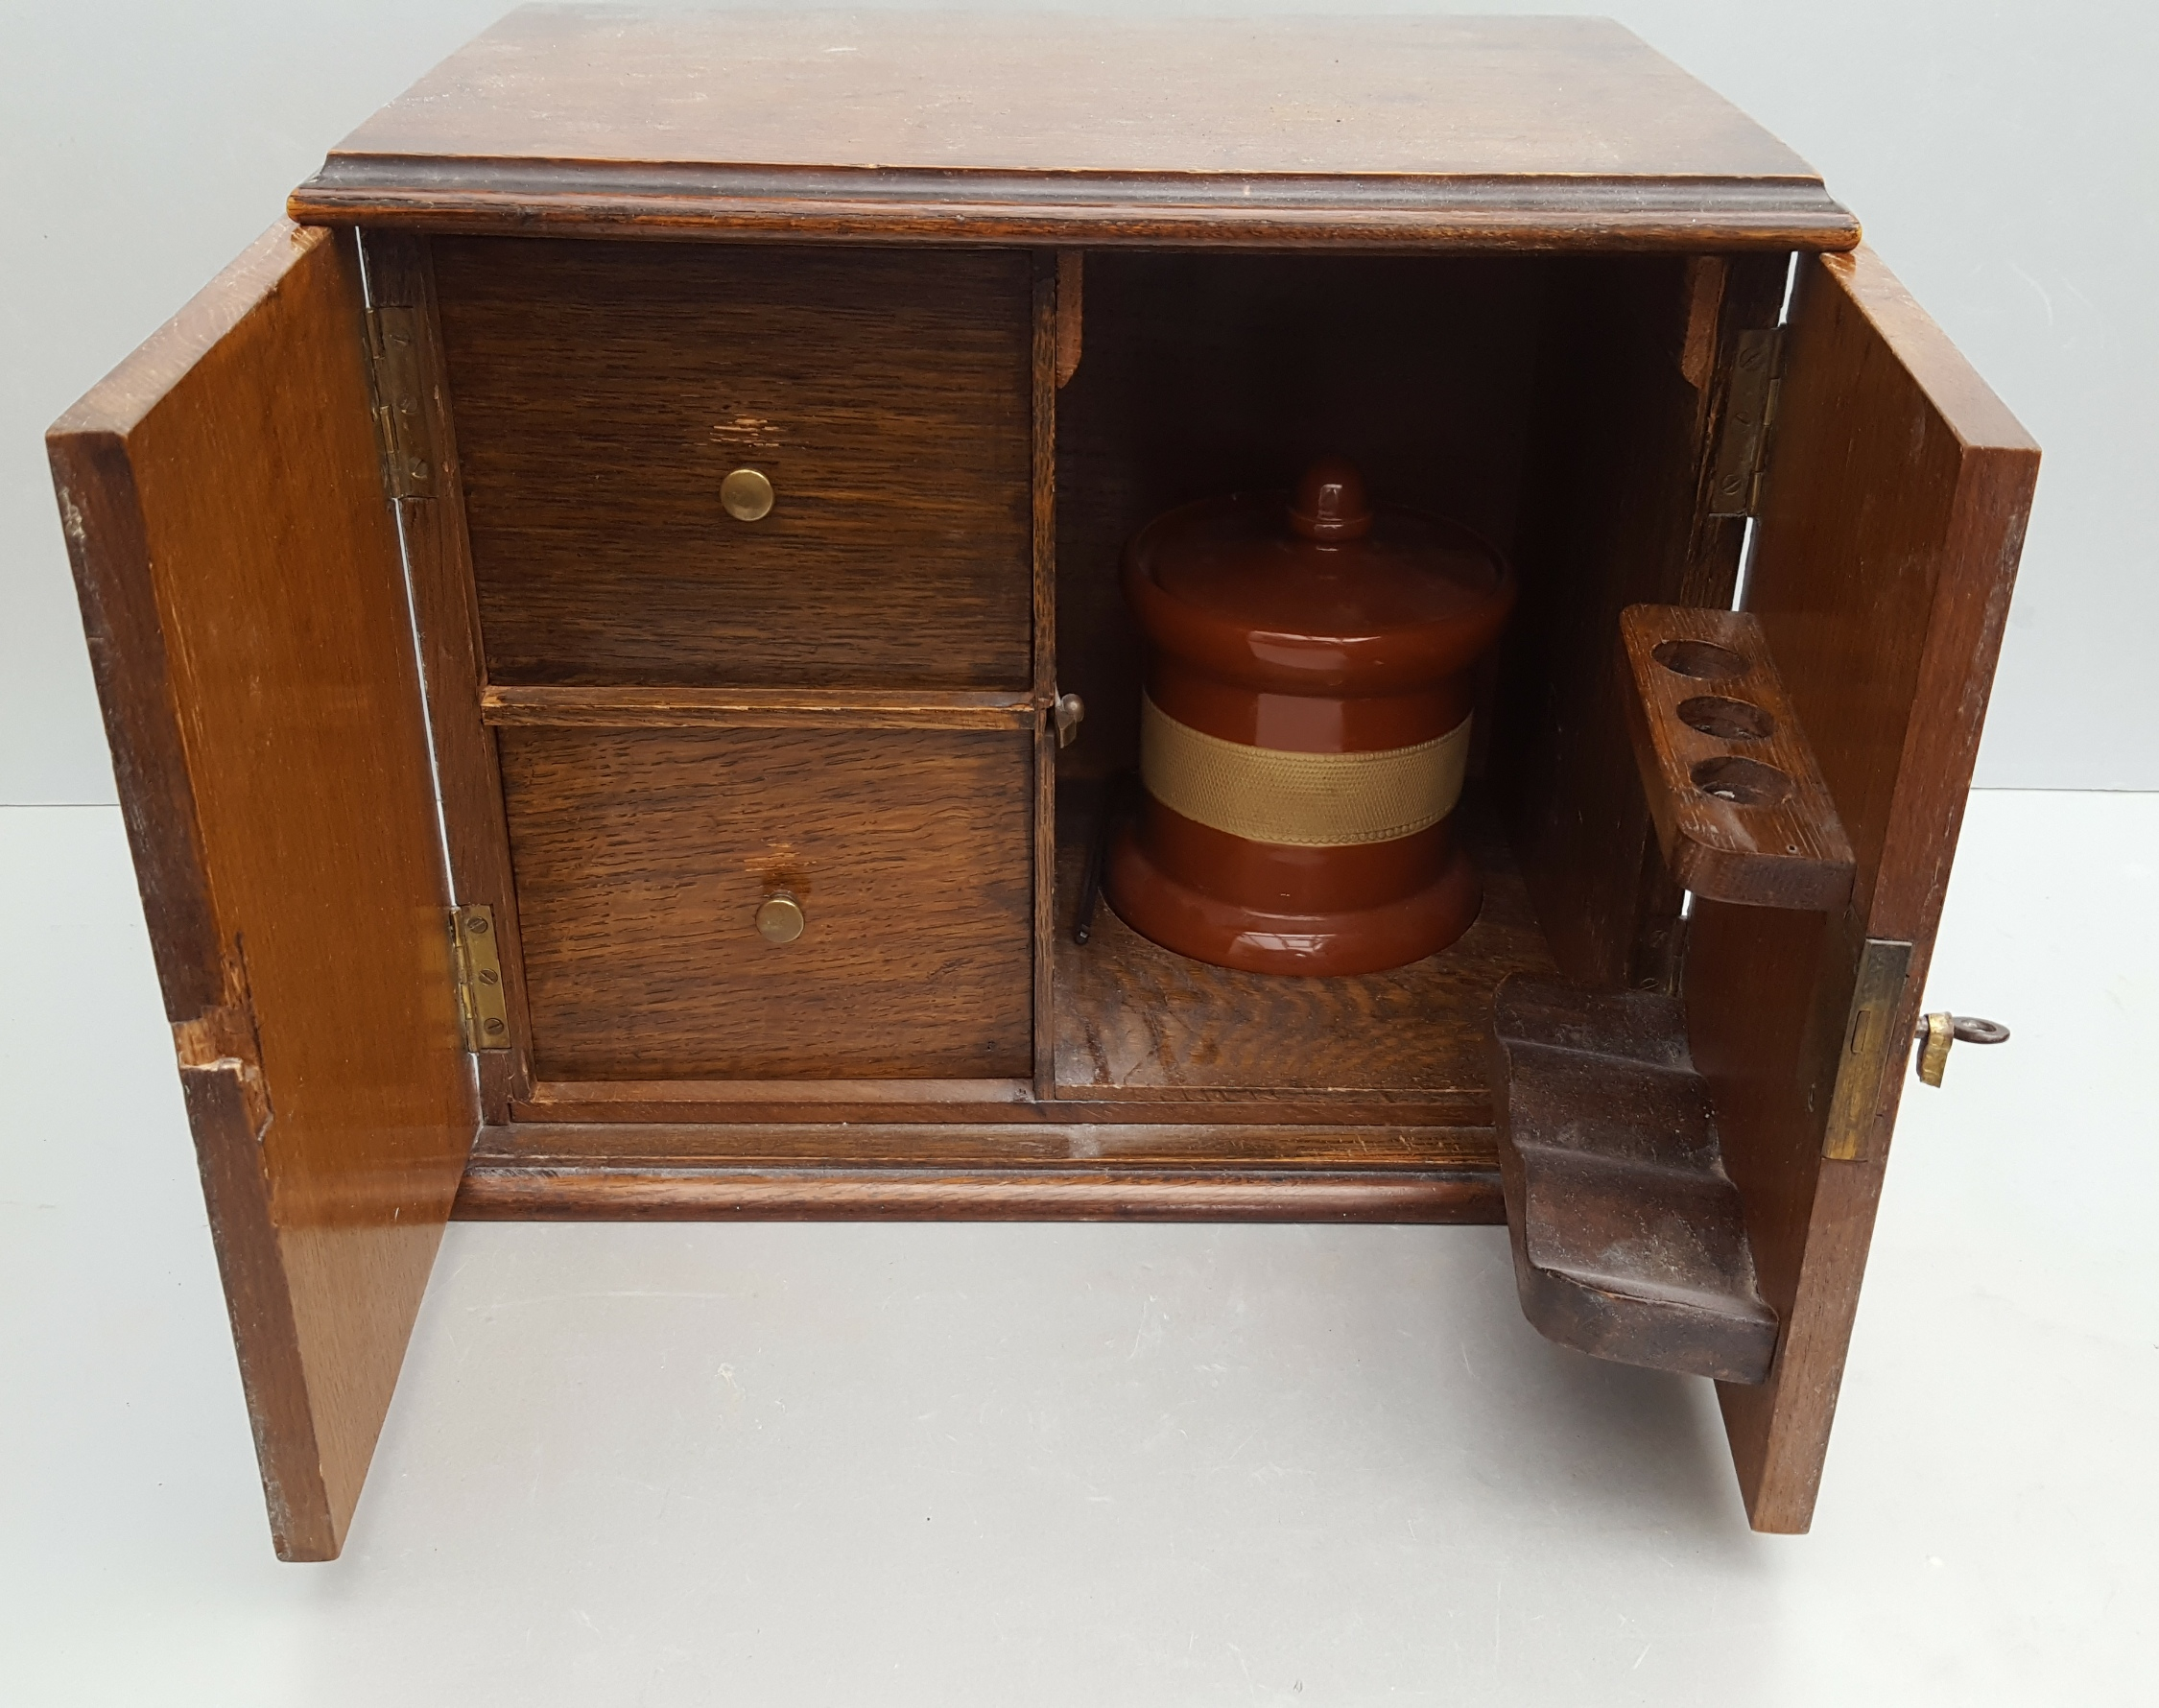 Lot 40 - Vintage Retro Oak Smokers Cabinet Jar A/F NO RESERVE